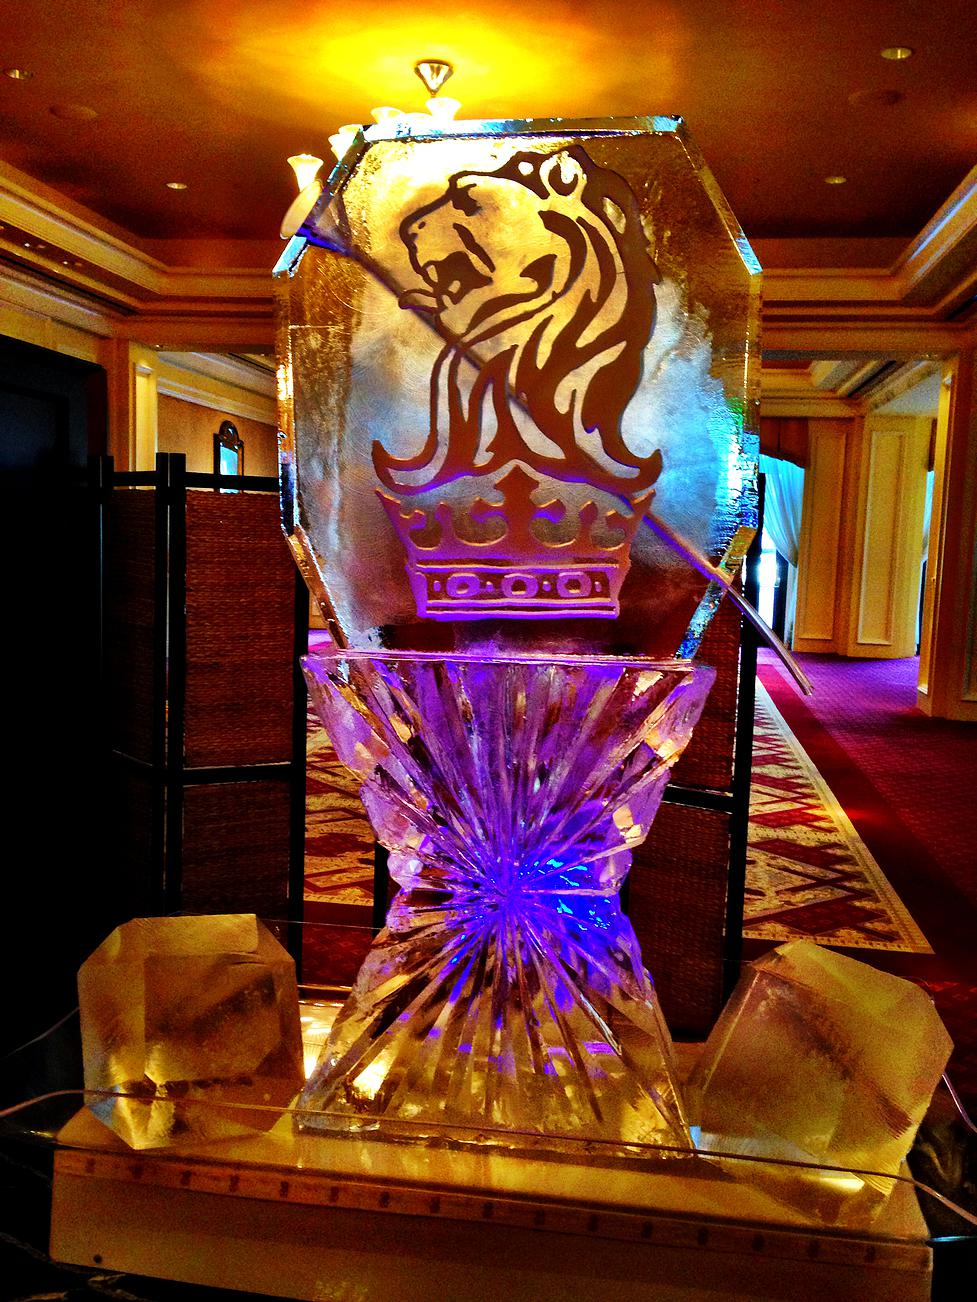 Corporate logo with luge